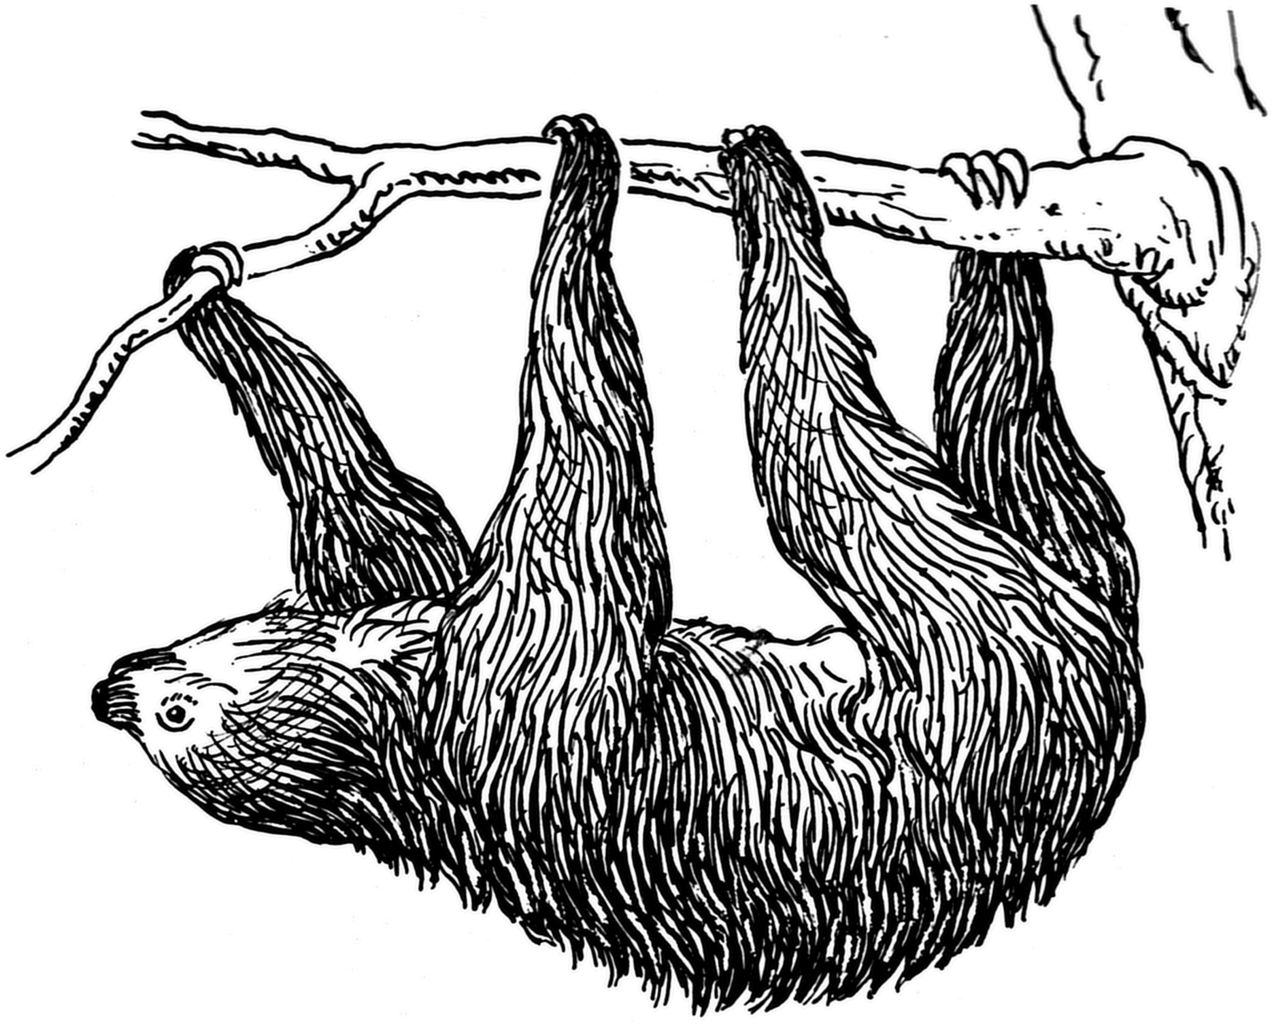 Sloth clipart png. Transparent images made by